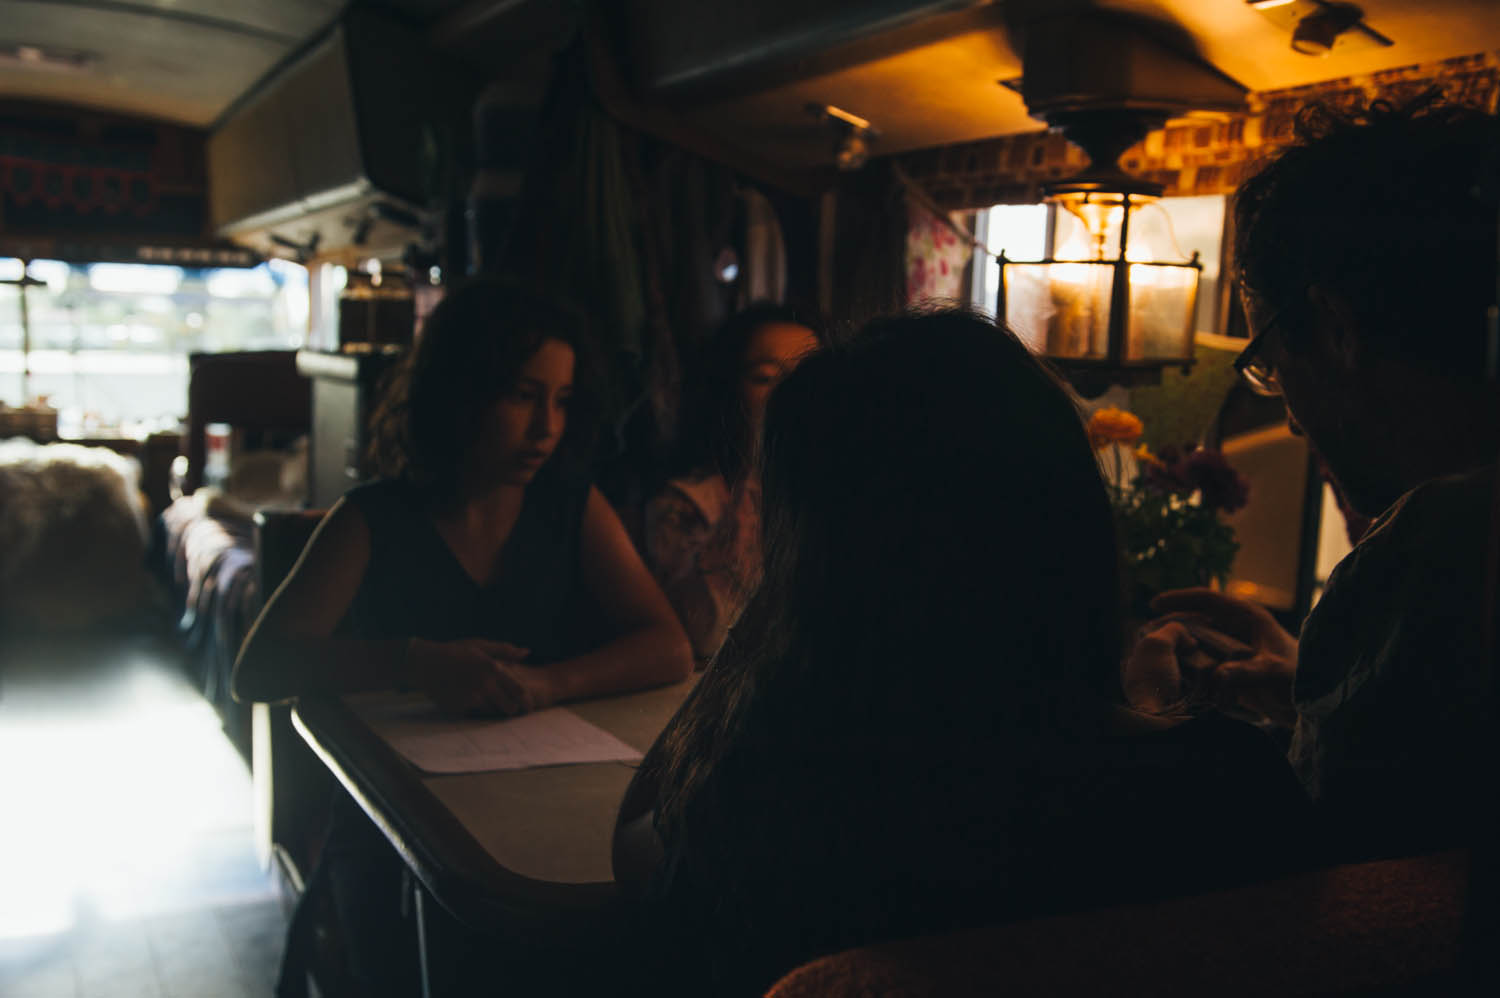 A game of Five Crowns in the bus in Salt Lake City, before the breakdown.